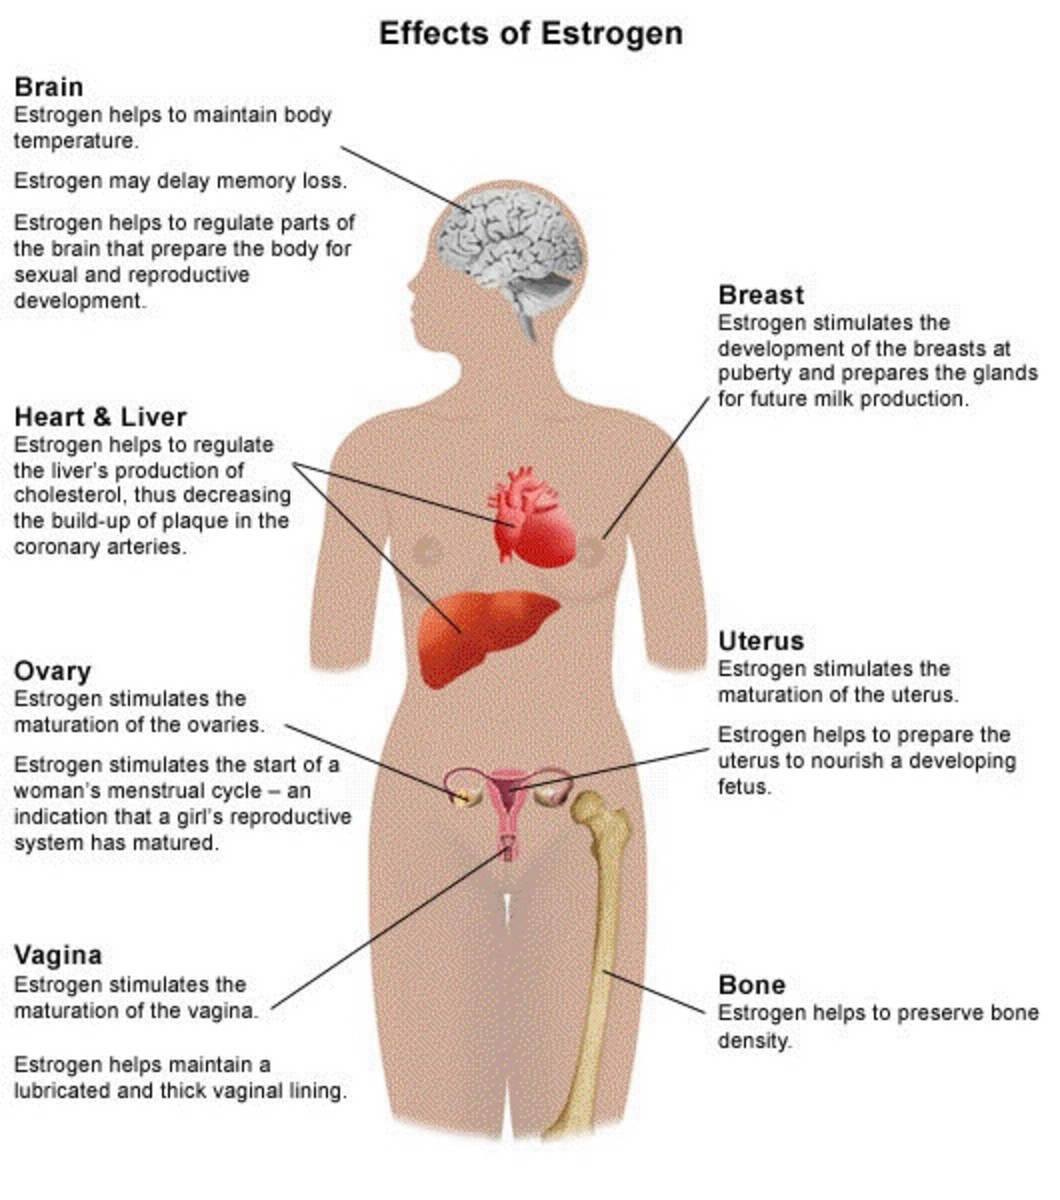 The Effects of Estrogen on the Female Body